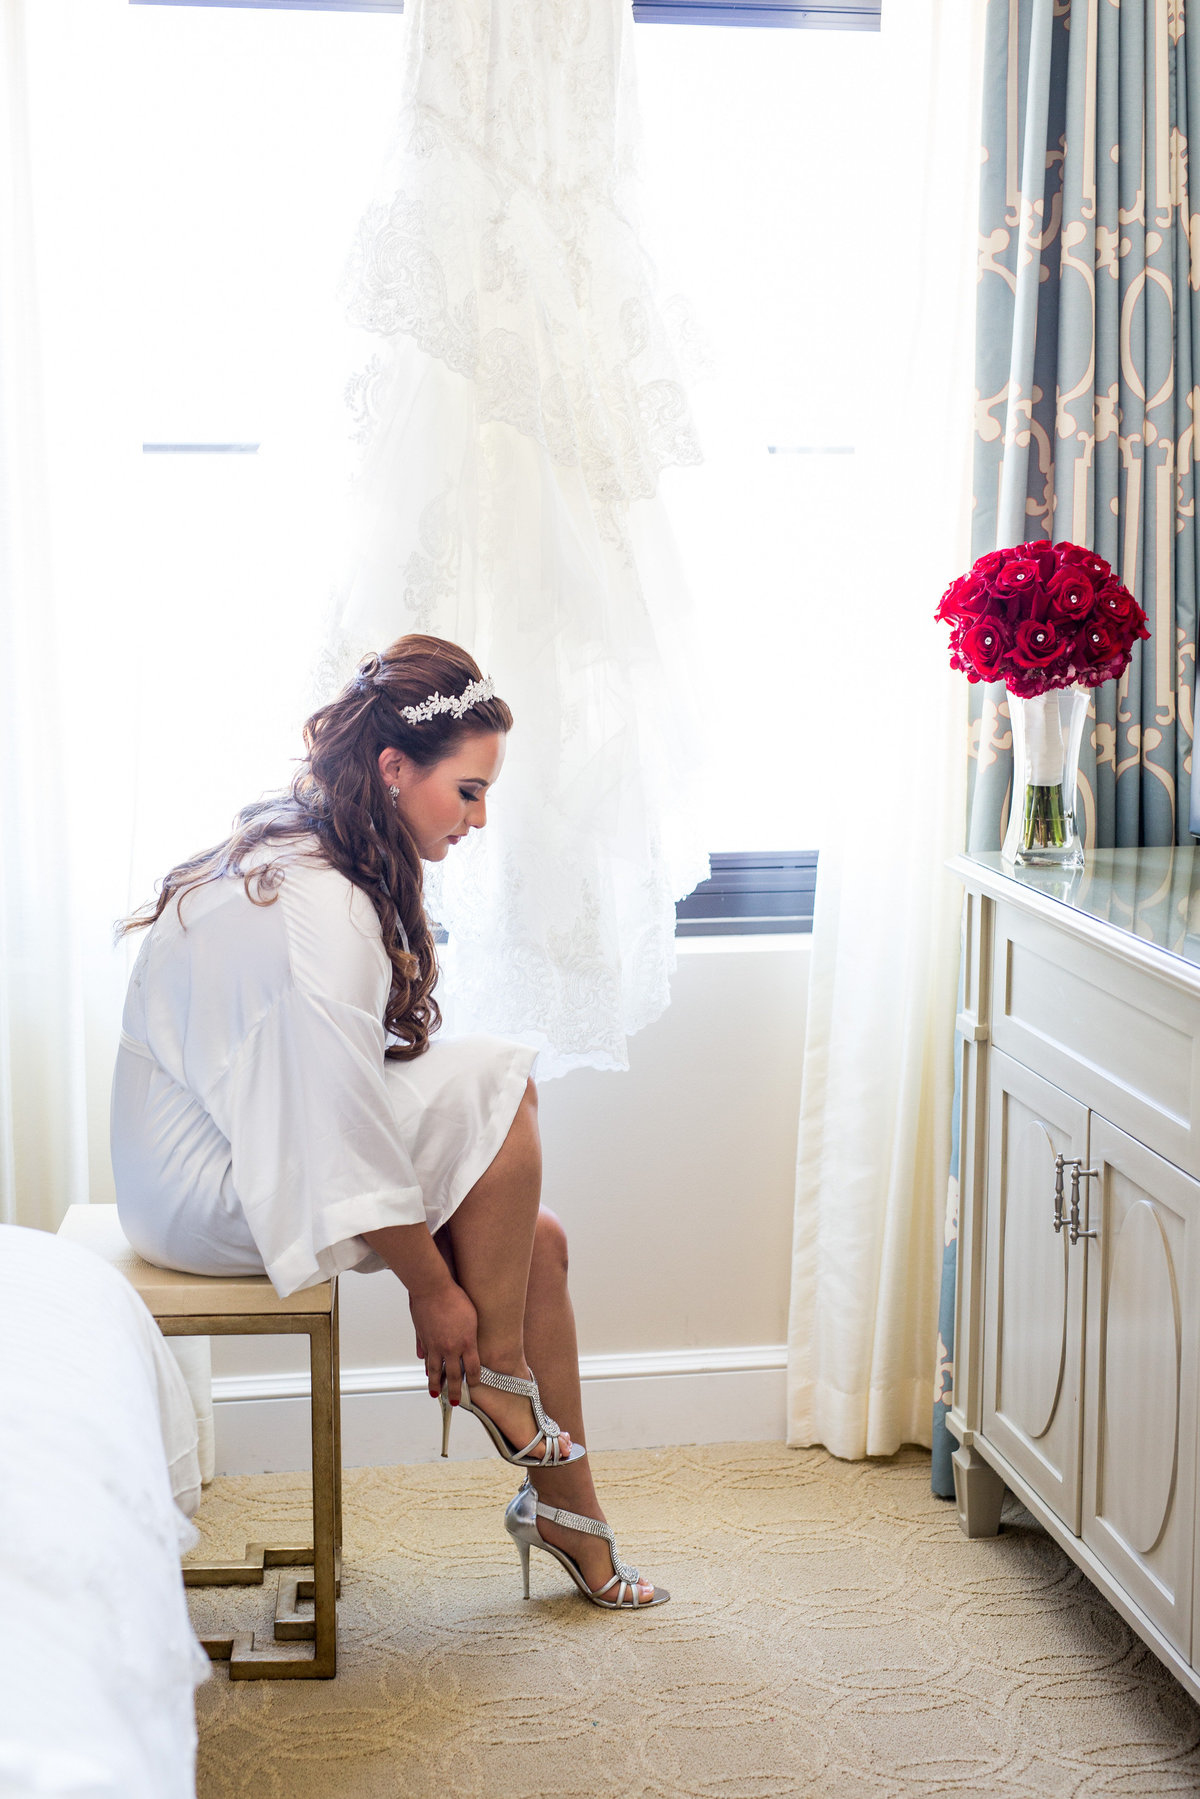 Bride putting her wedding shoes on as she gets ready for wedding ceremony at Eilan Hotel